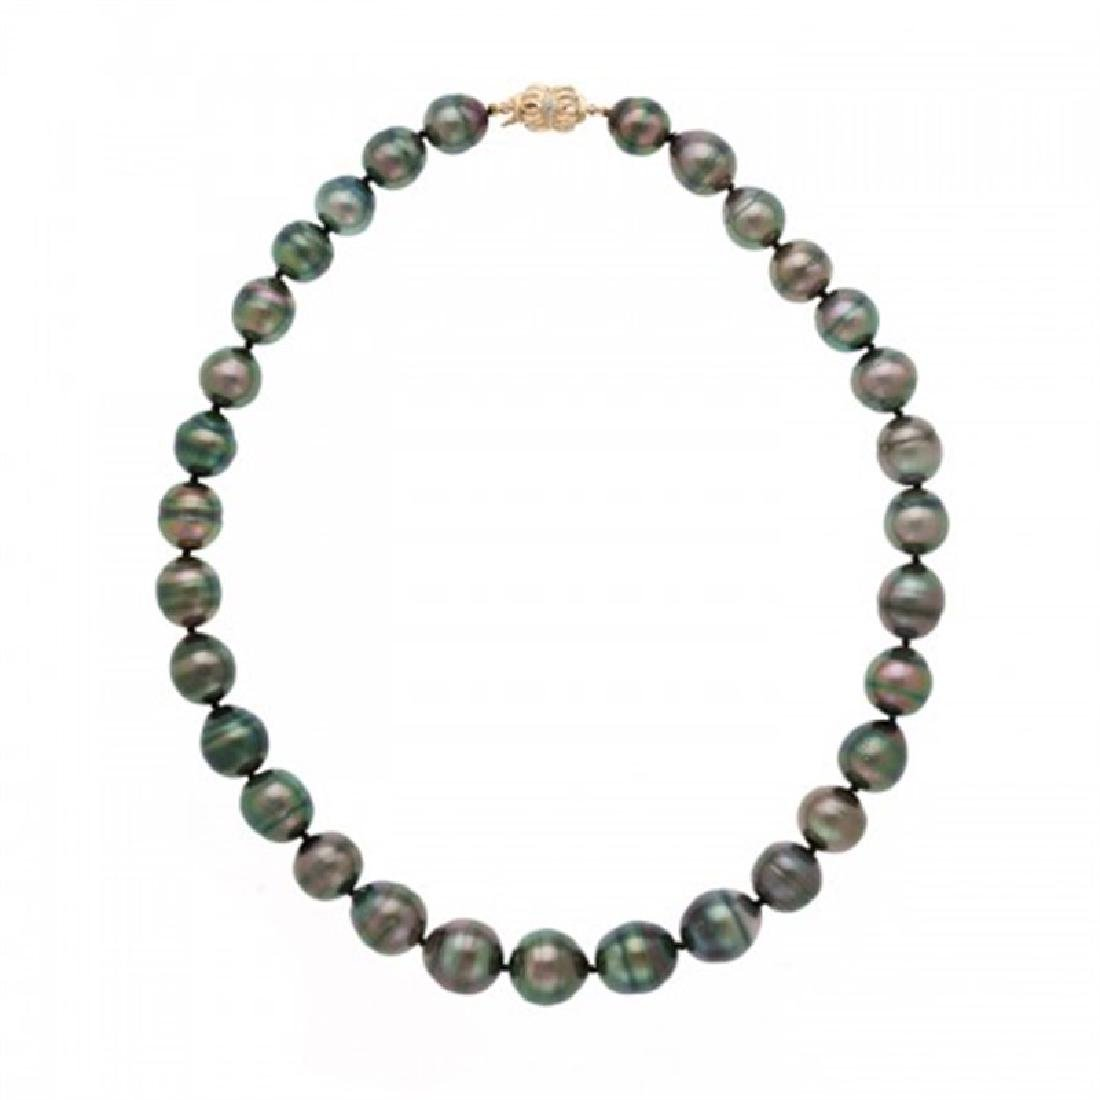 11.0-14.0mm Tahitian Black Pearl Necklace